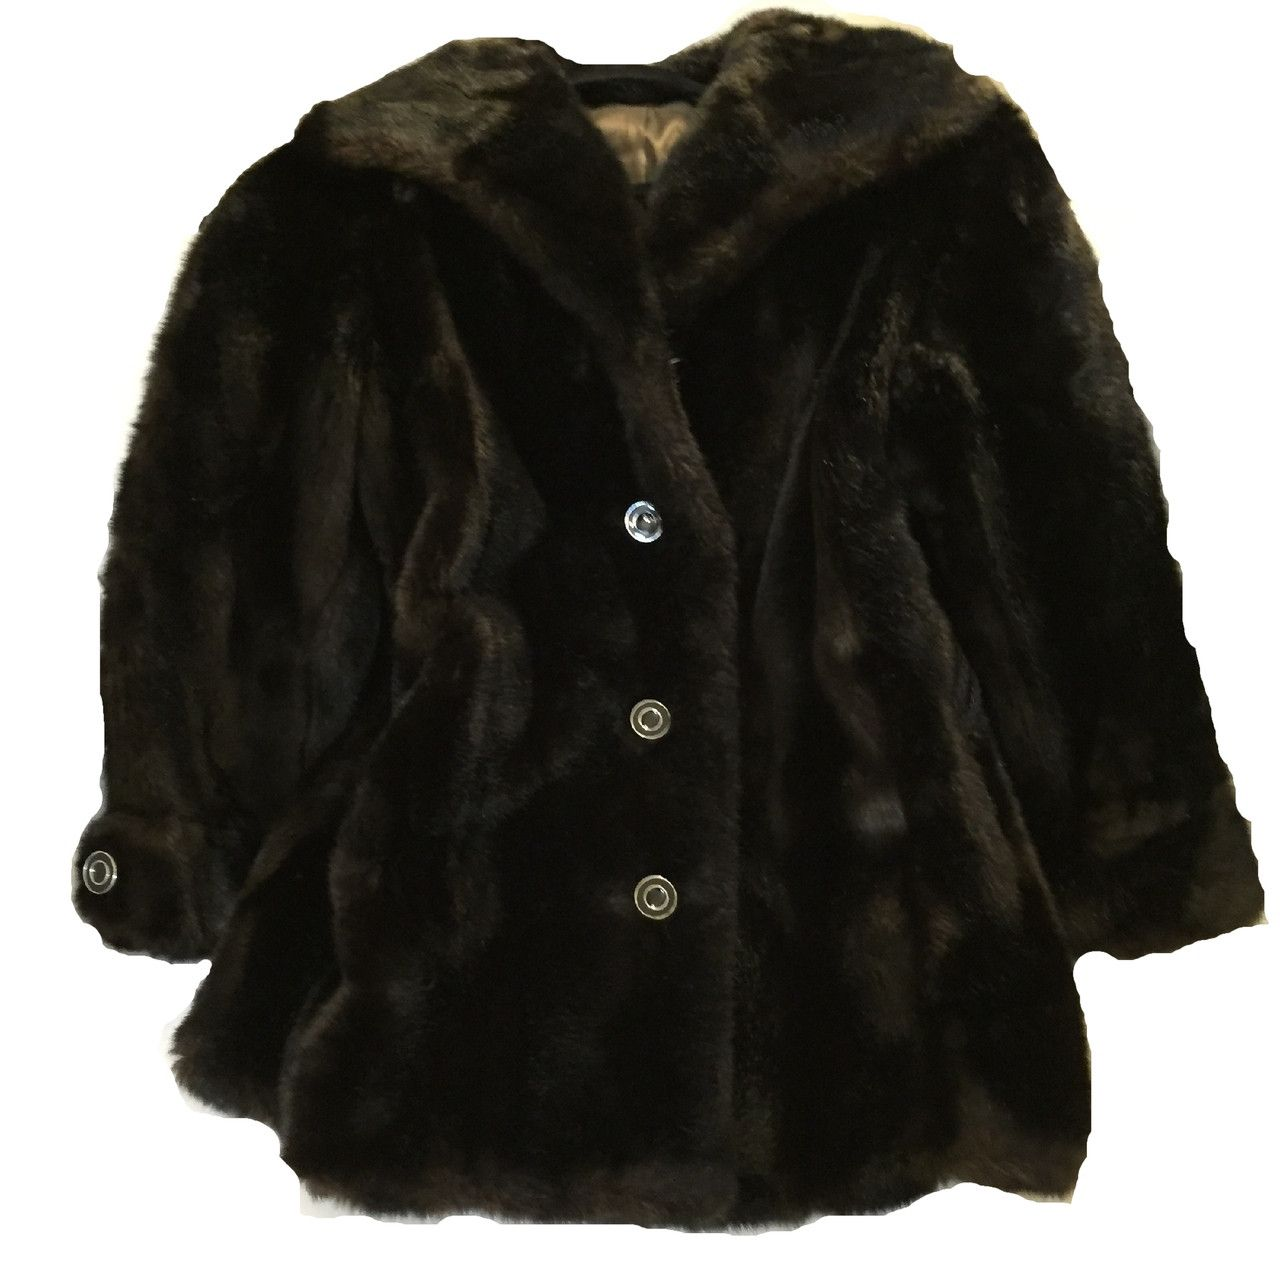 Size 10 - Fabulous Faux Fur Coat